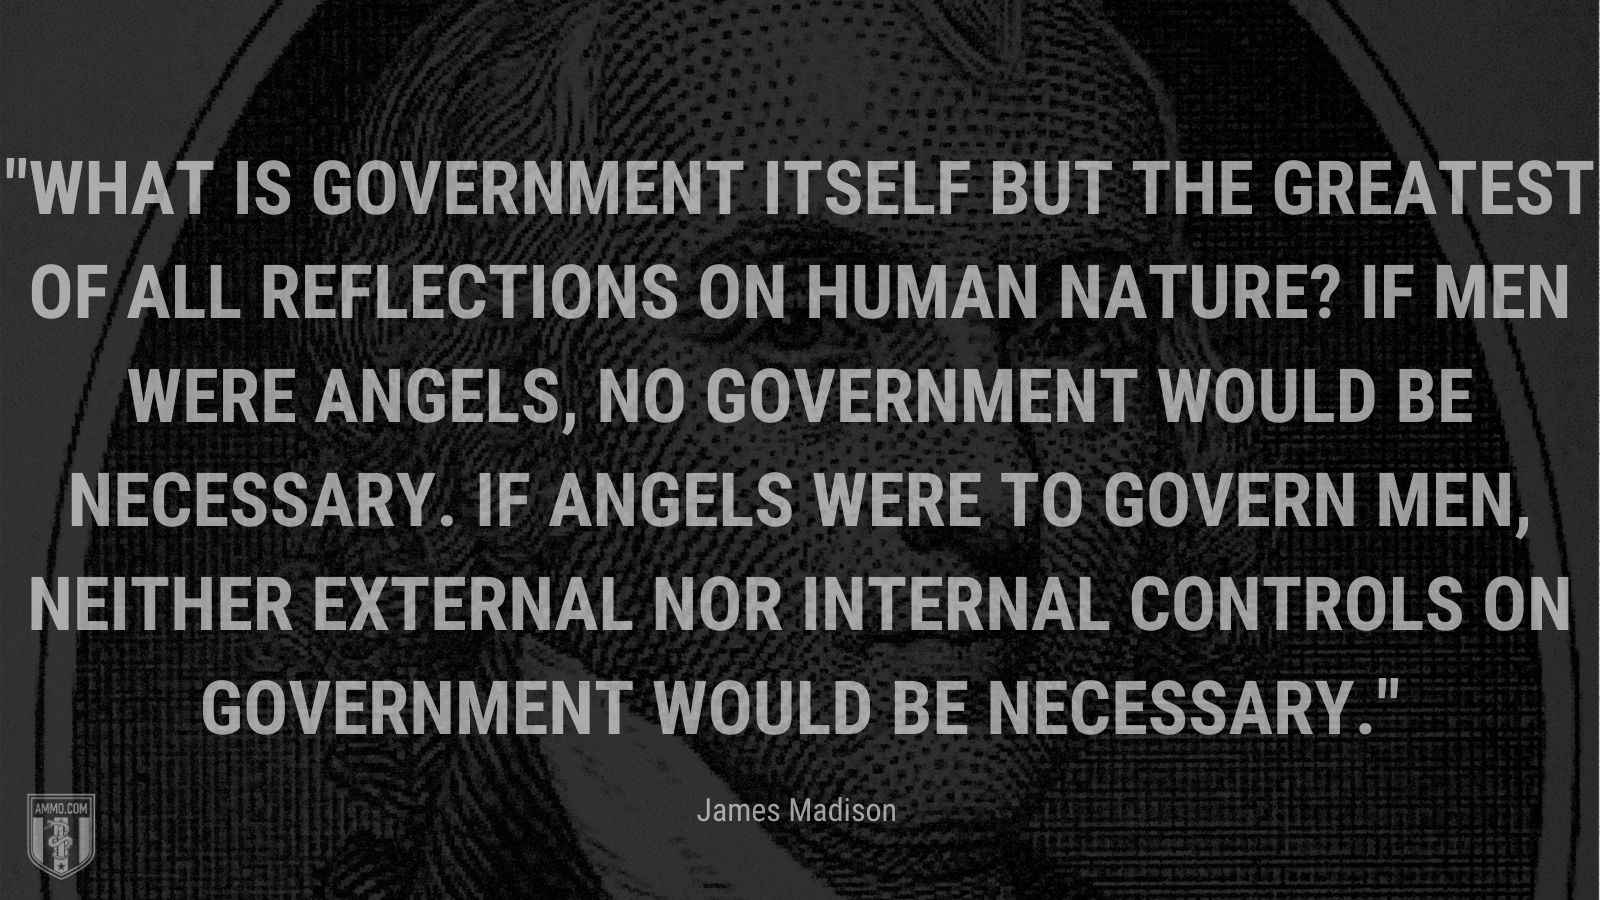 """""""What is government itself but the greatest of all reflections on human nature? If men were angels, no government would be necessary. If angels were to govern men, neither external nor internal controls on government would be necessary."""" - James Madison"""